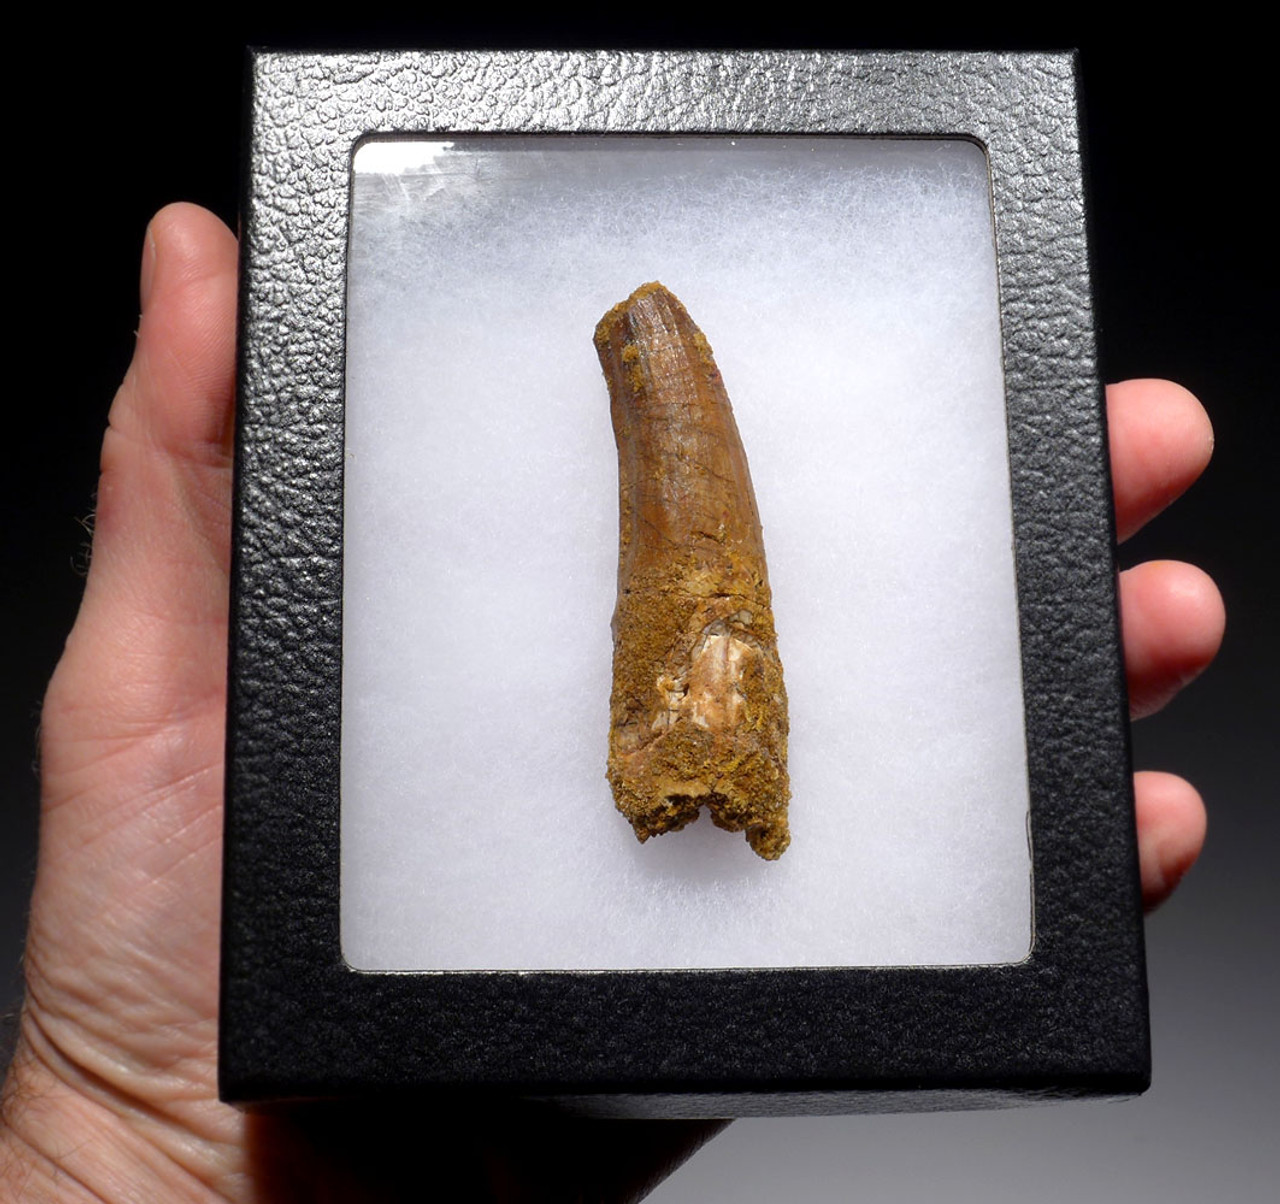 PATHOLOGICALLY DEFORMED 3 INCH SPINOSAURUS DINOSAUR FOSSIL TOOTH *DT5-387